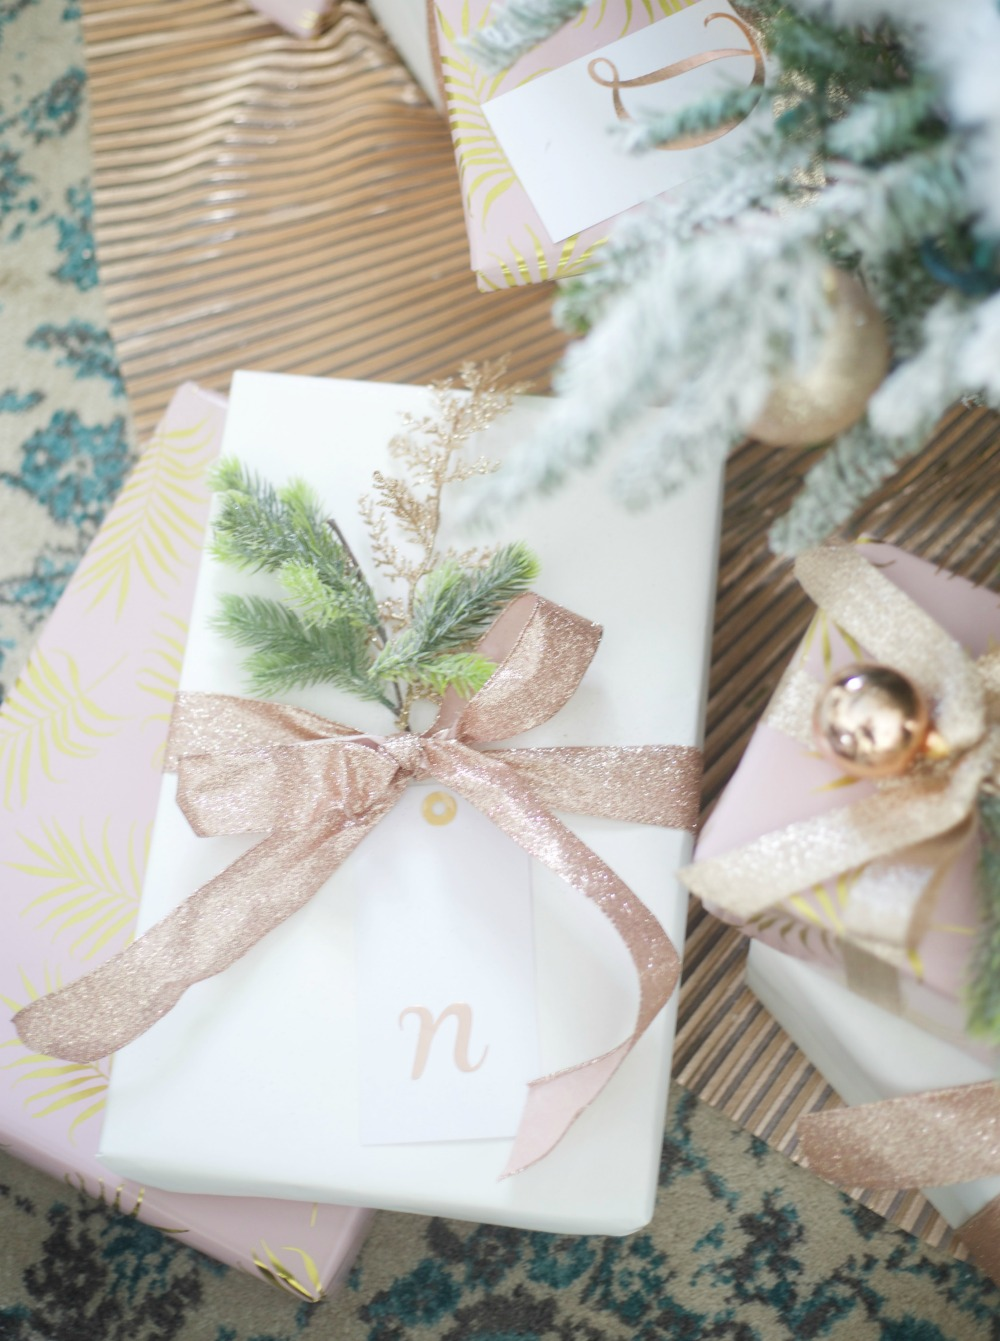 Rose Gold Wrapping Paper   Christmas Presents   Wrapping paper idea   How to Wrap a Present   Rose Gold Tree Skirt